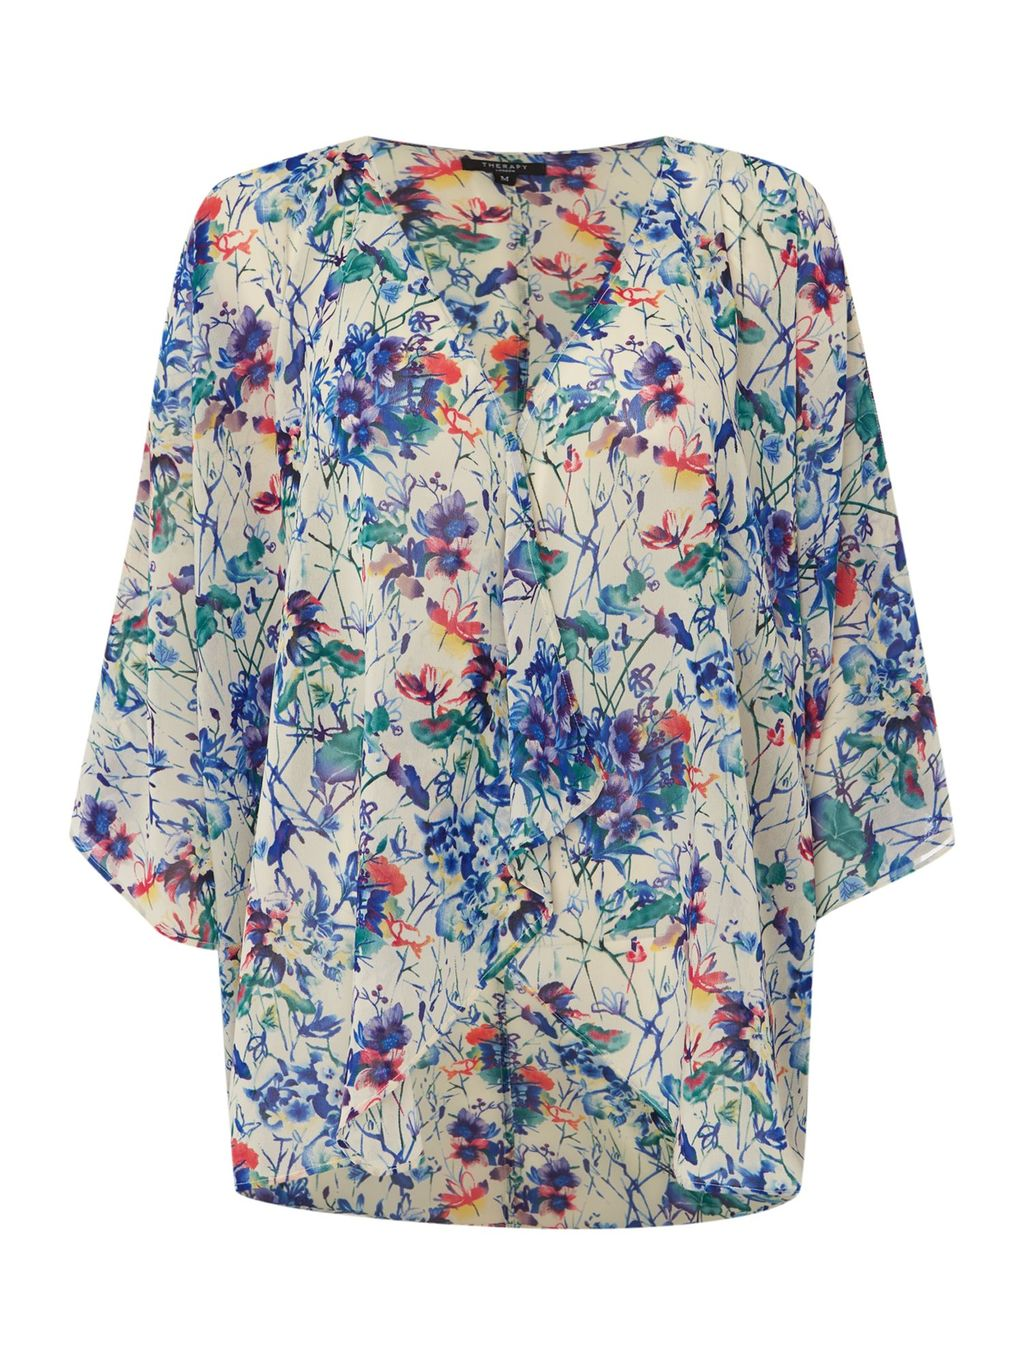 Faith Floral Print Longline Kimono, Multi Coloured - neckline: v-neck; predominant colour: ivory/cream; secondary colour: diva blue; occasions: casual; length: standard; style: top; fibres: polyester/polyamide - 100%; fit: body skimming; sleeve length: 3/4 length; sleeve style: standard; pattern type: fabric; pattern: florals; texture group: other - light to midweight; multicoloured: multicoloured; season: s/s 2016; wardrobe: highlight